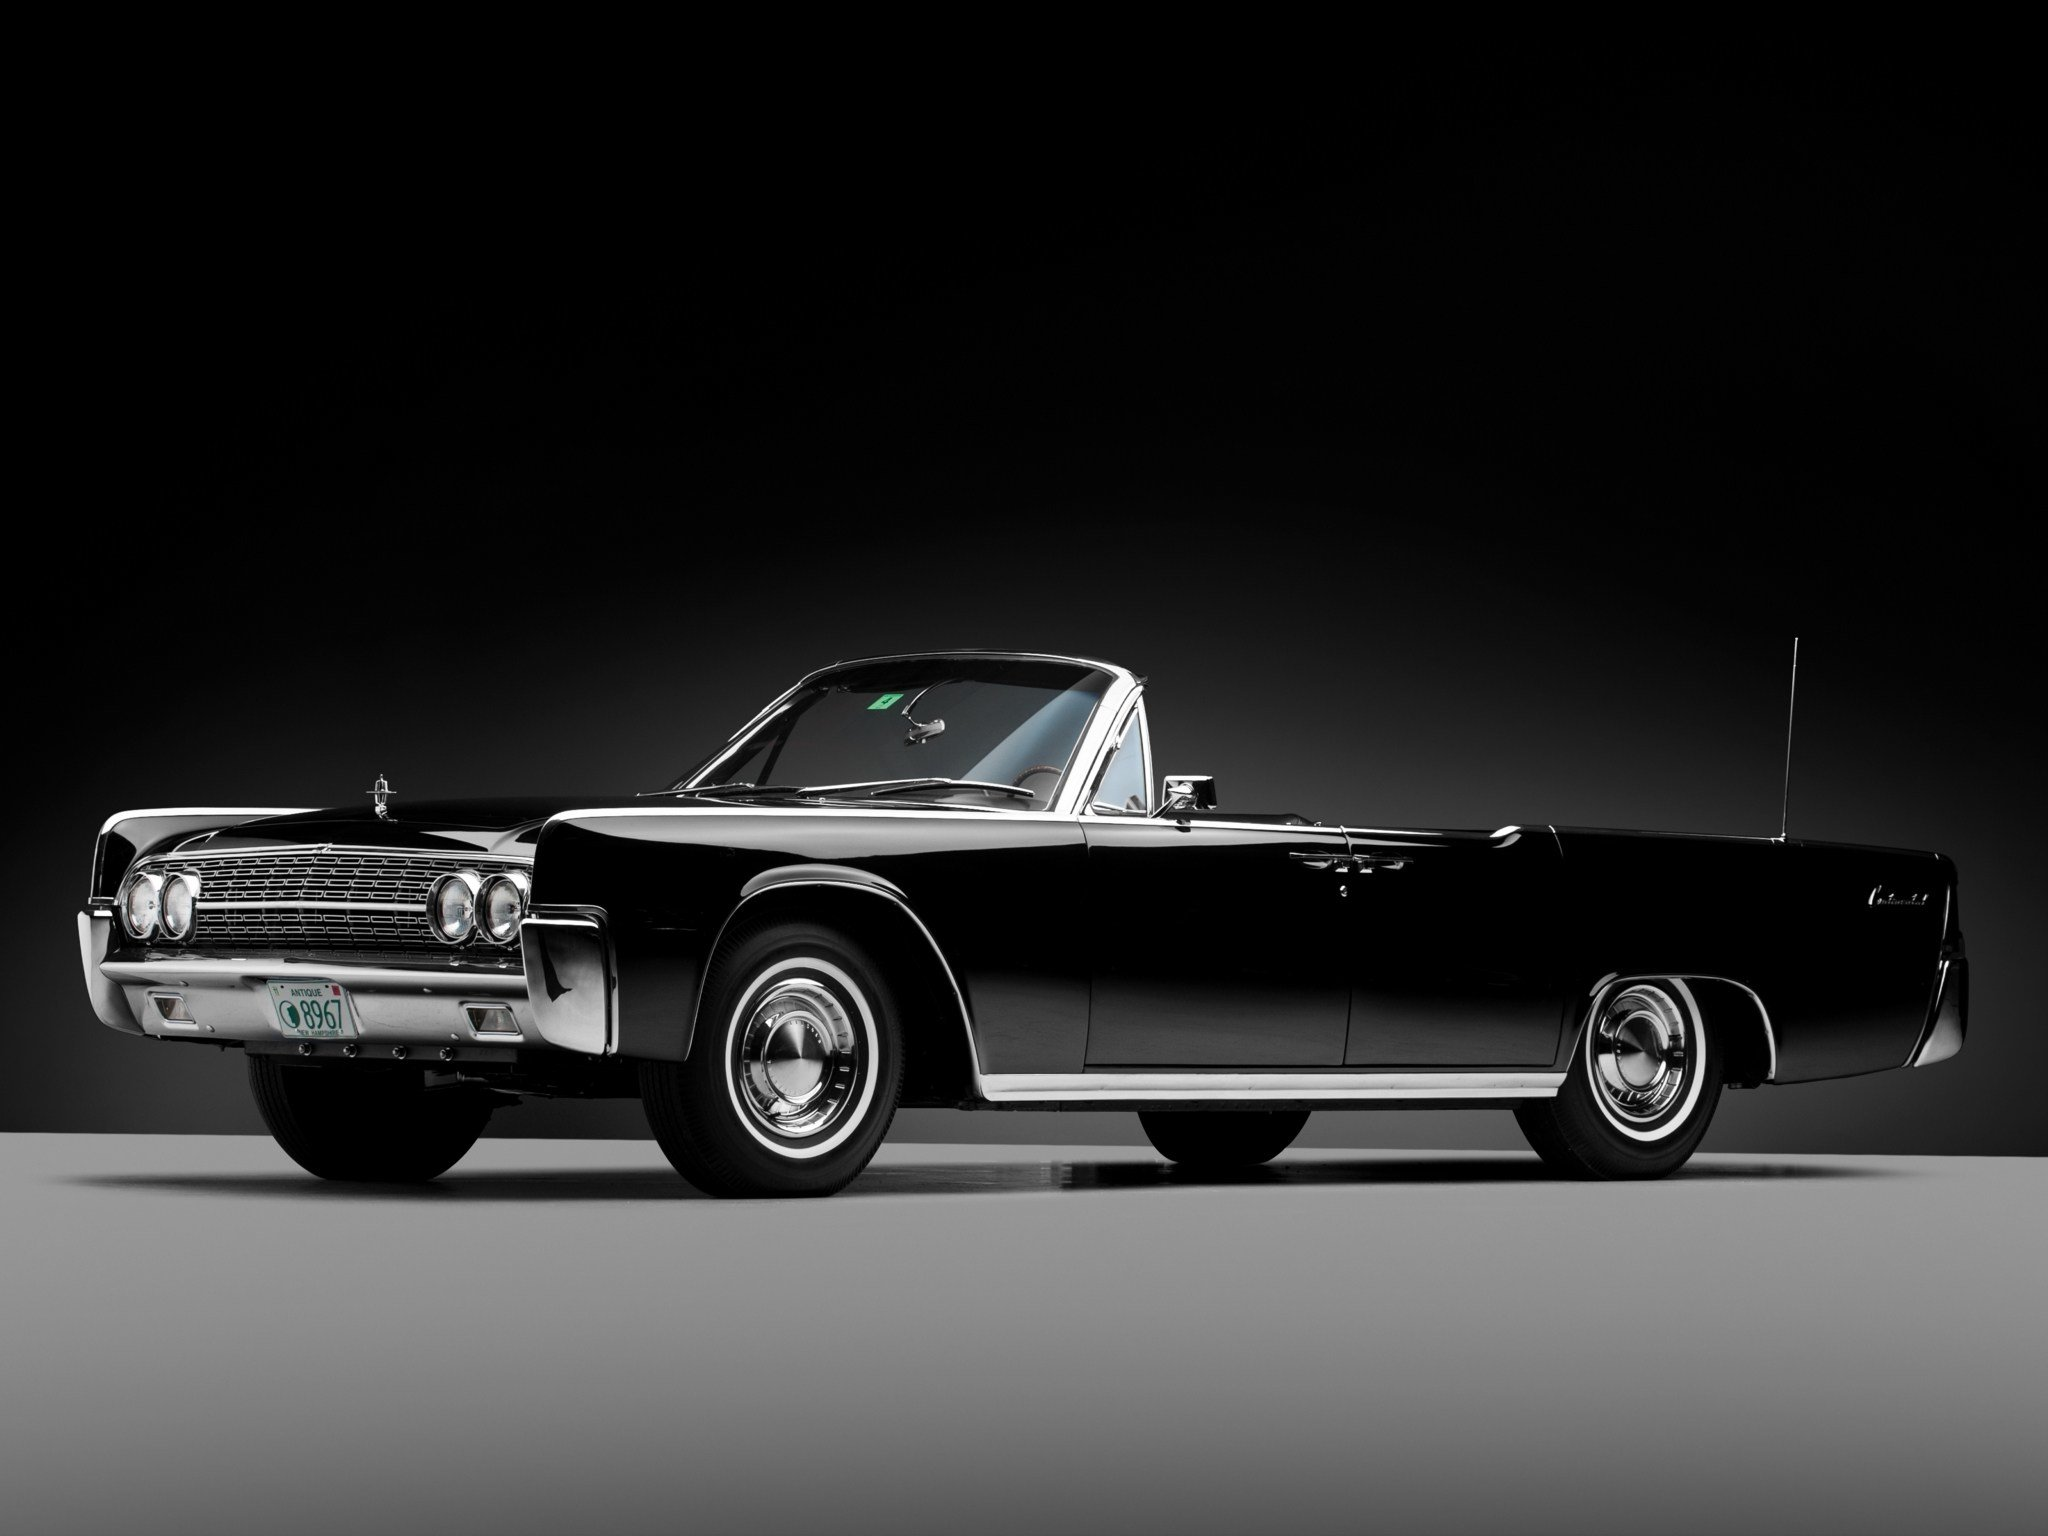 Latest Black Classic Car Lincoln Continental Wallpape 14223 Free Download